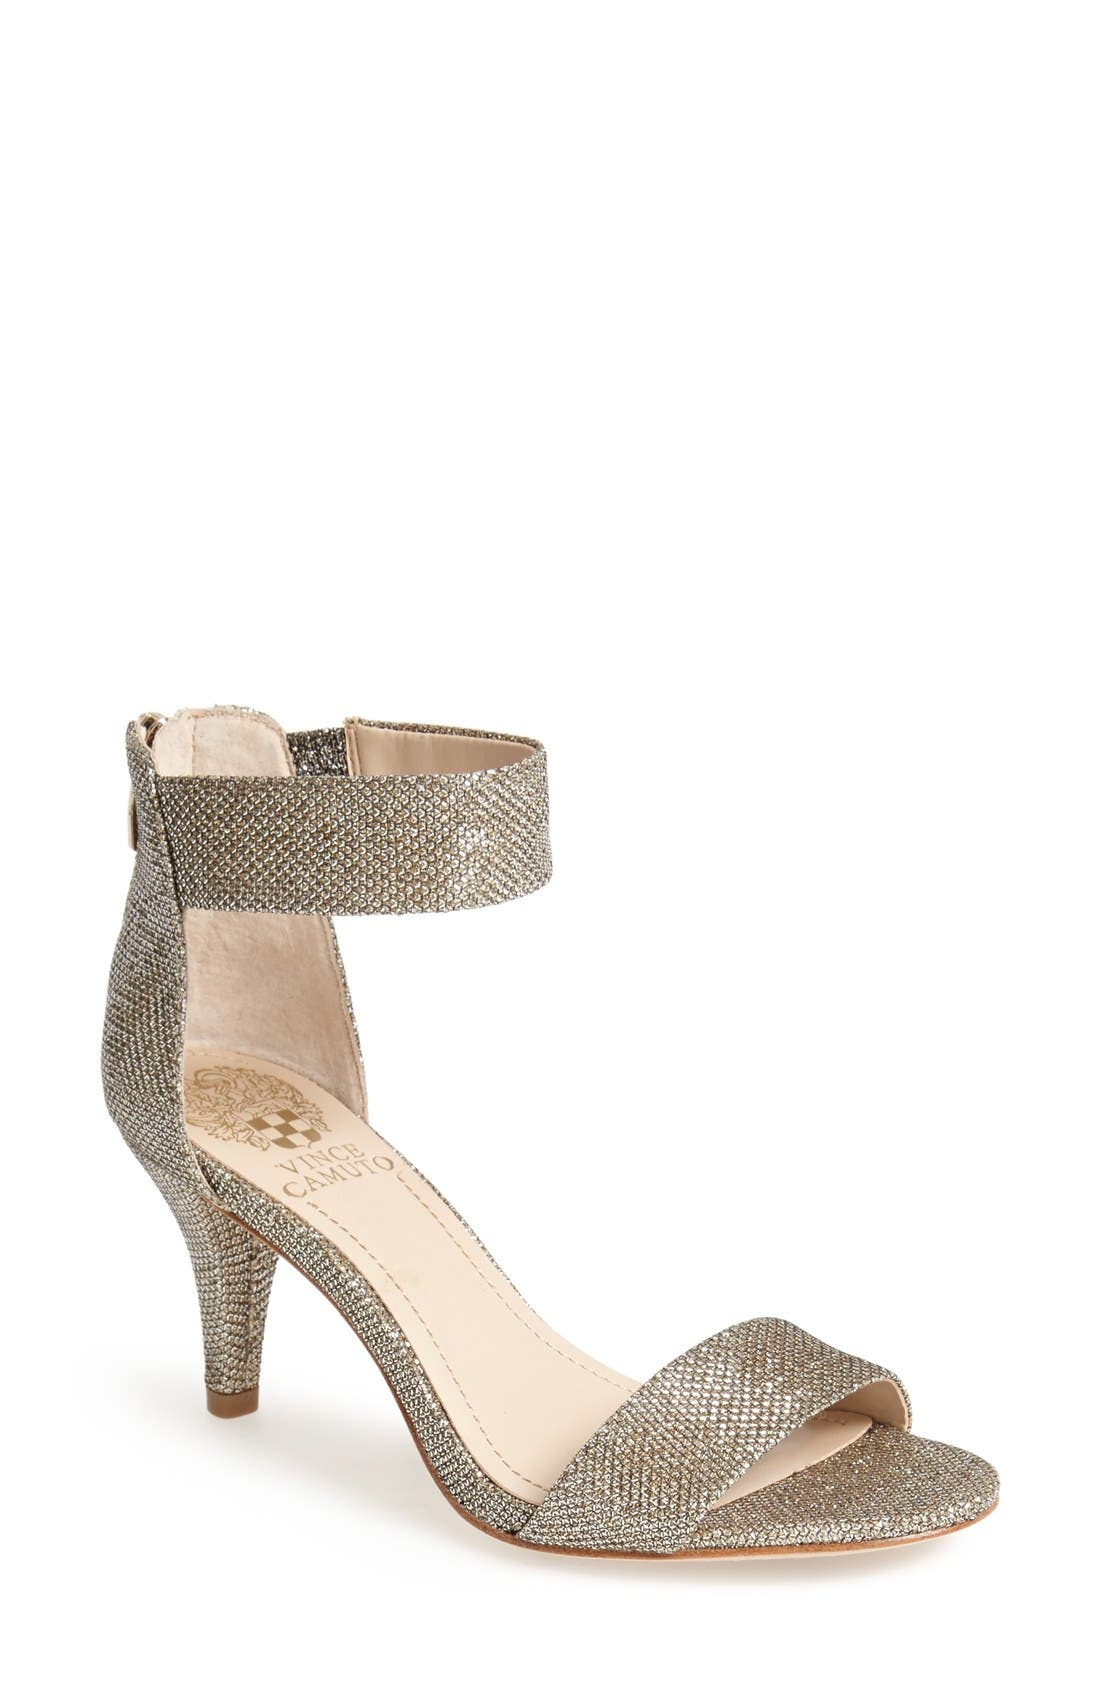 Alternate Image 1 Selected - Vince Camuto 'Marleen' Sandal (Nordstrom Exclusive)